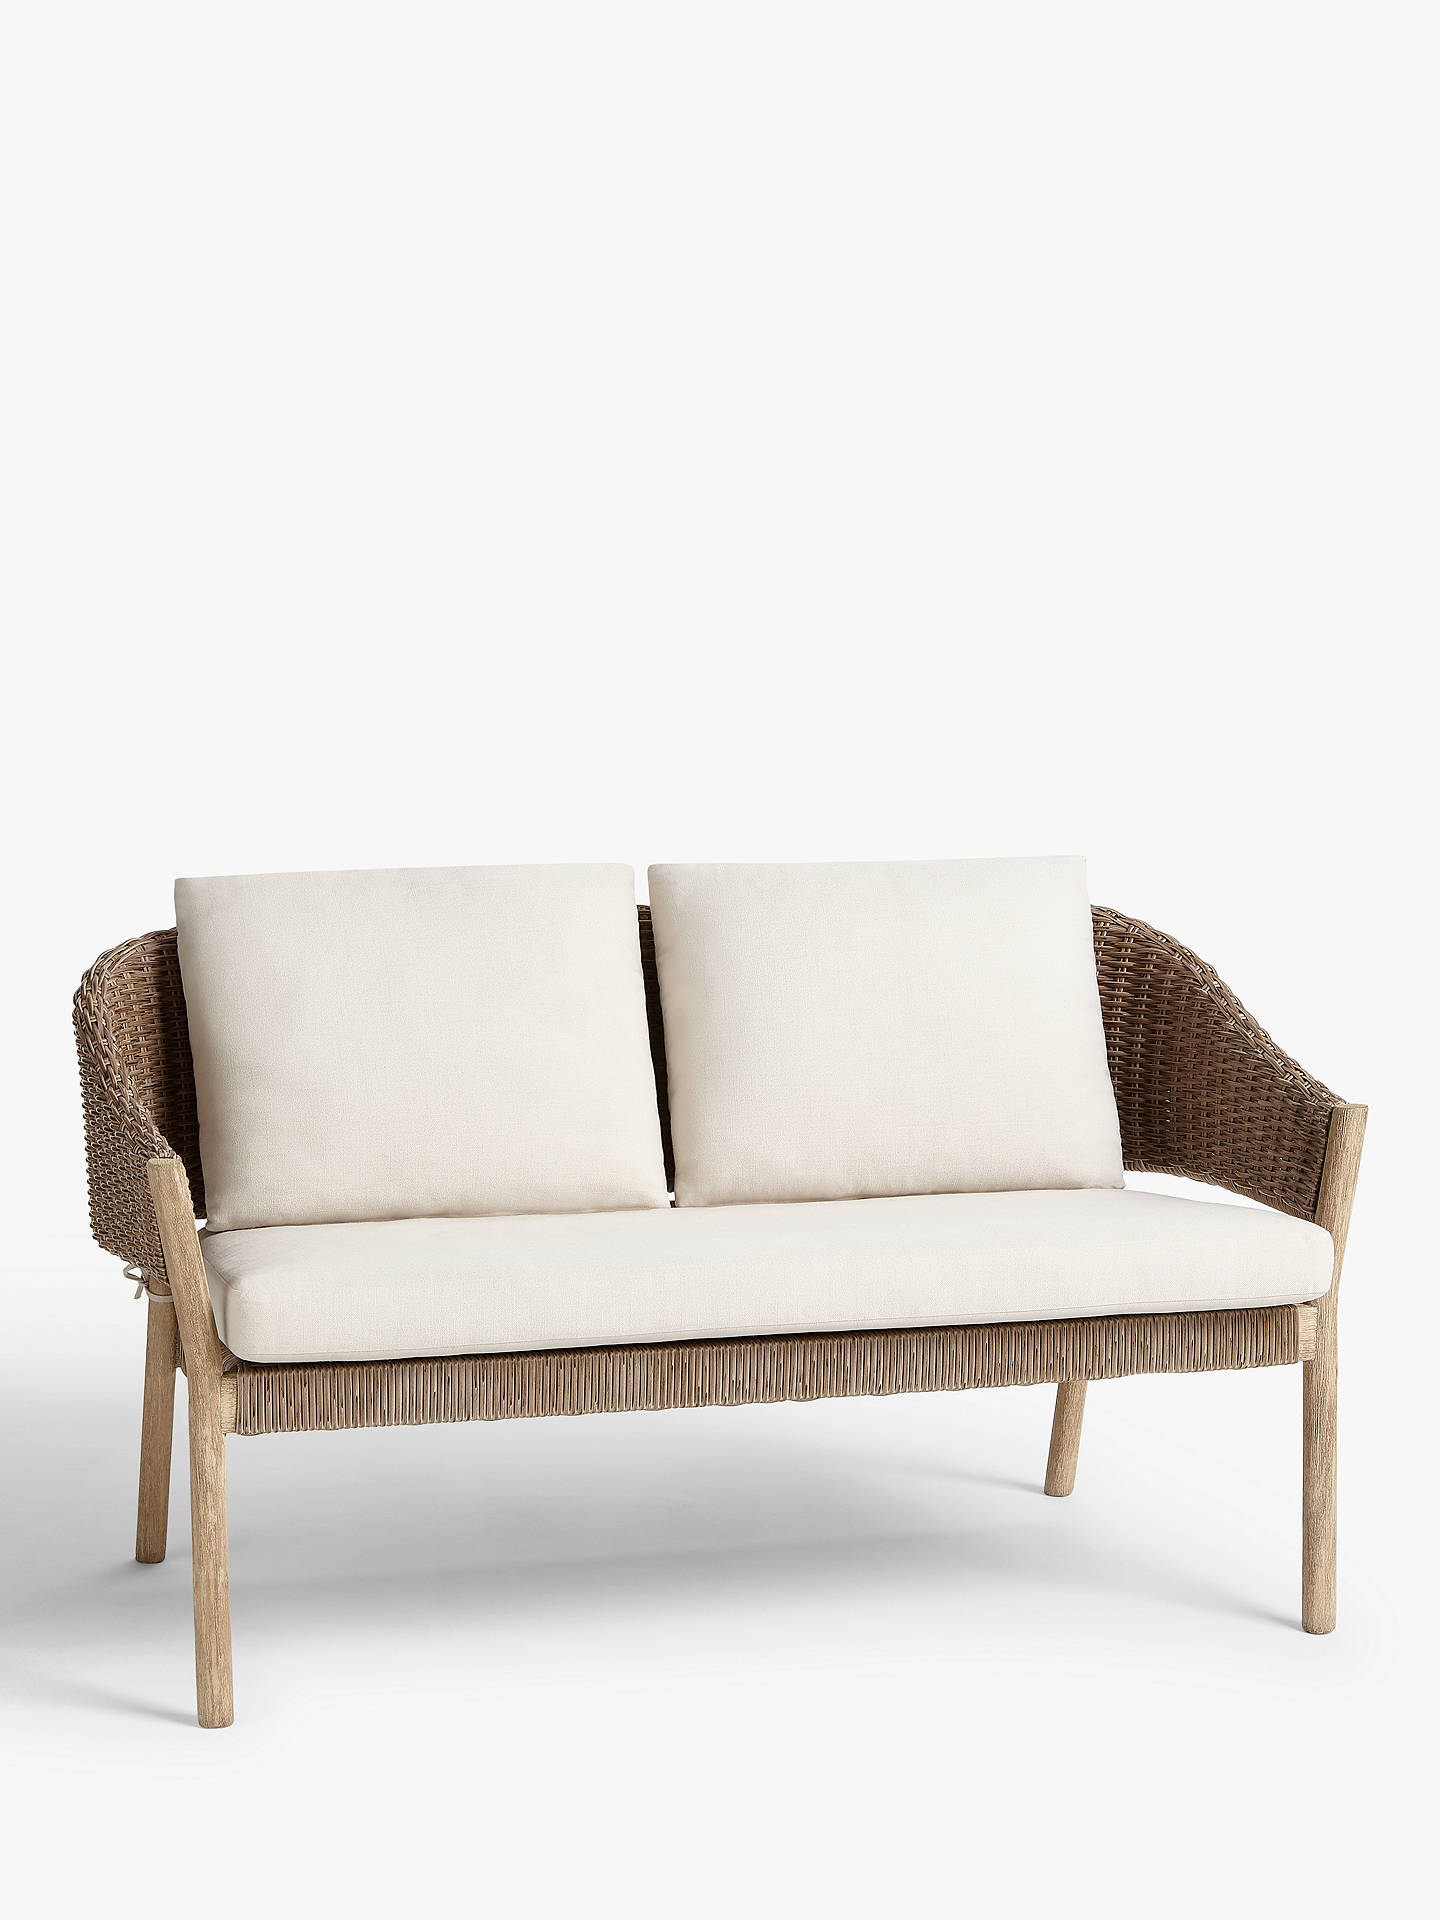 Croft Collection Burford Garden Woven 2 Seat Sofa Fsc Certified Acacia Wood Natural